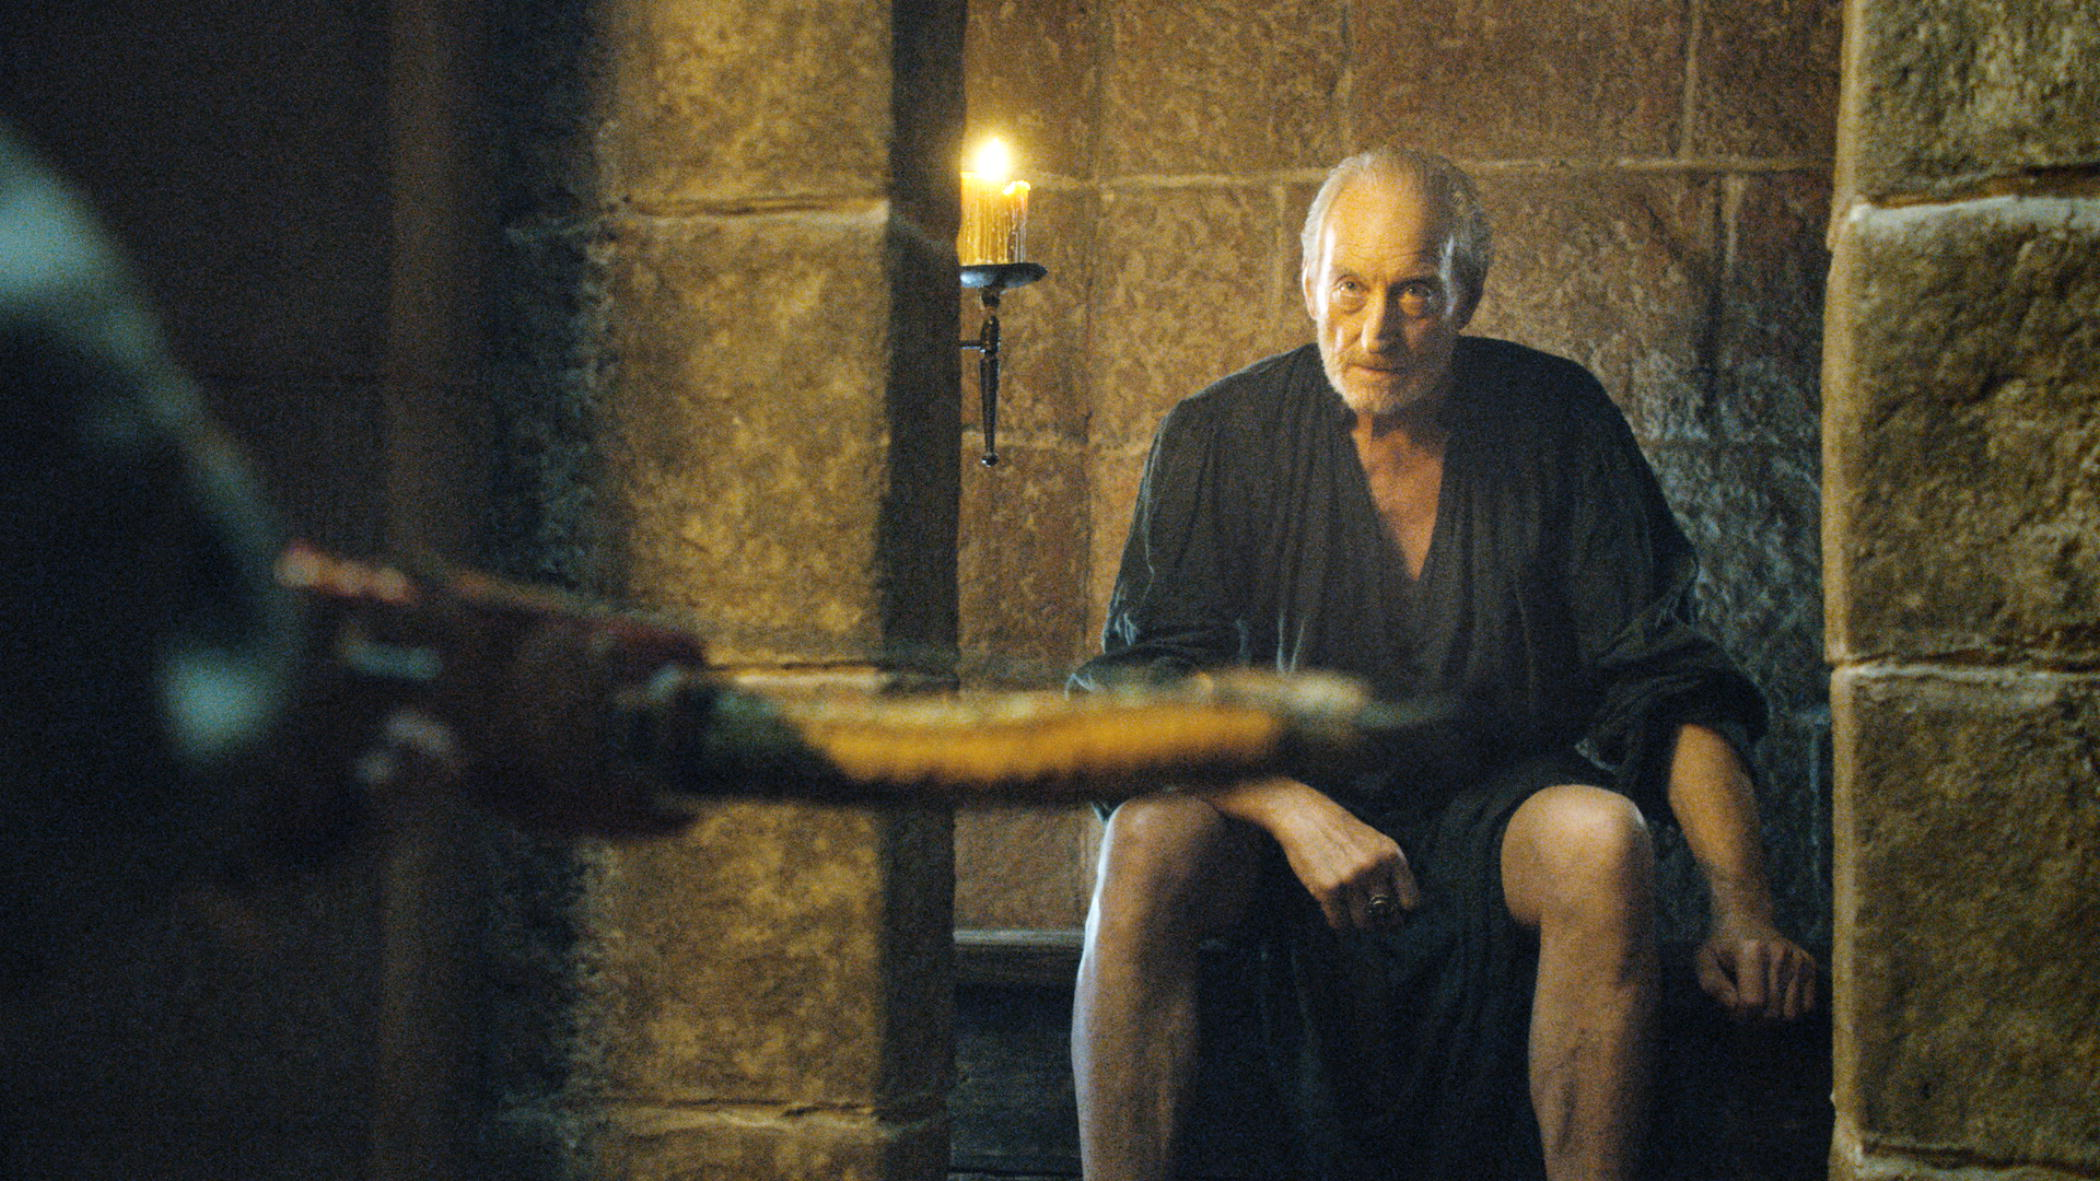 gameofthrones_crossbow_tywin